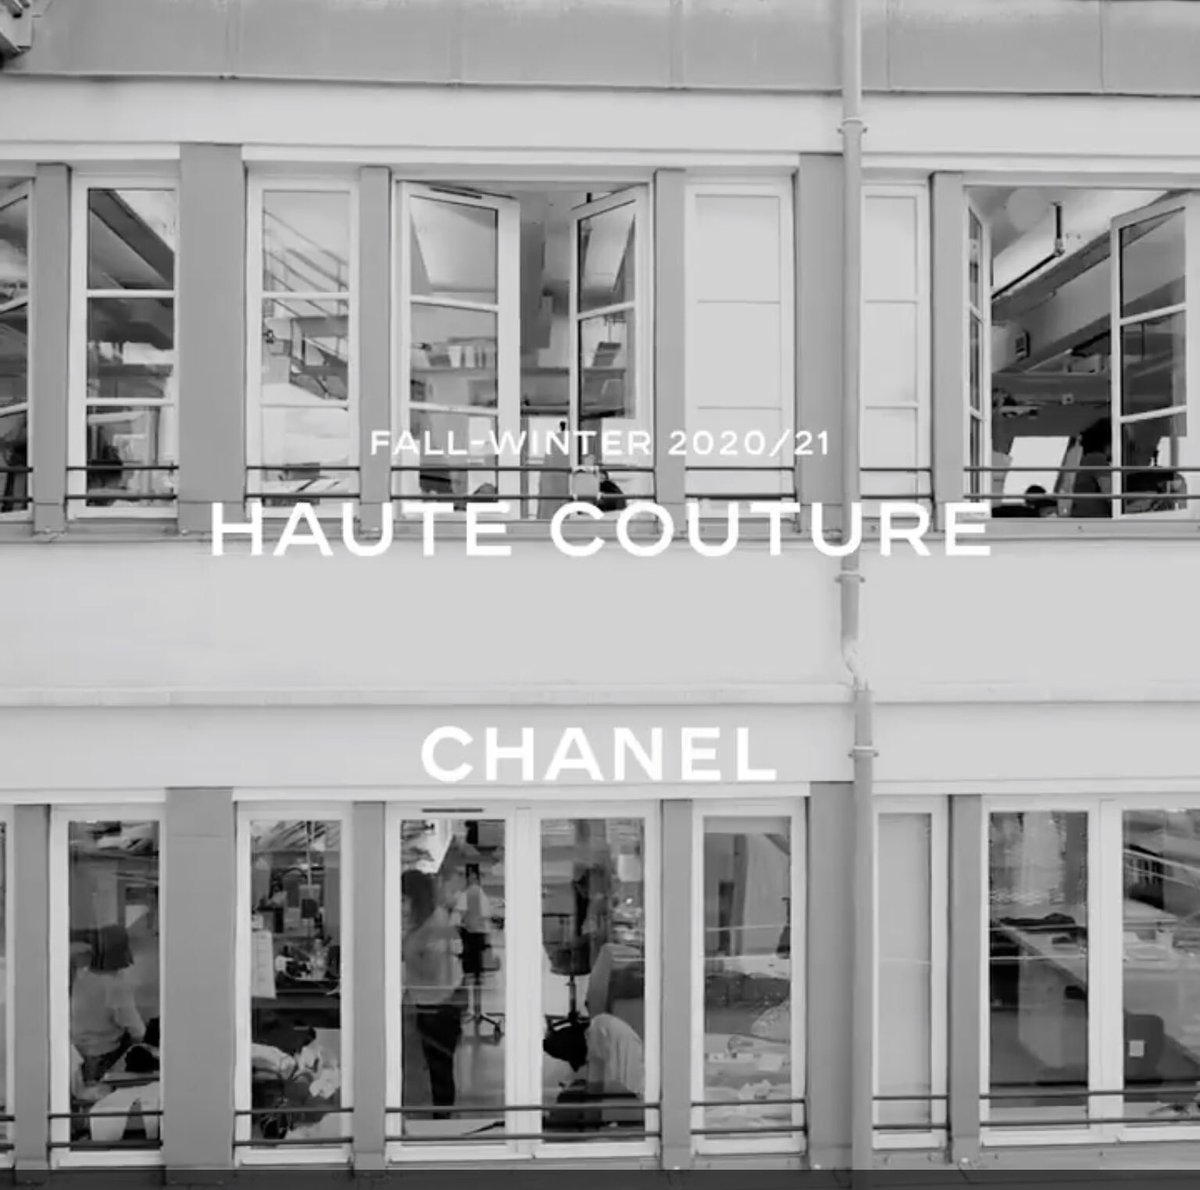 CHANEL présente son défilé Haute Couture 2020/21 en ligne. 📆 Rendez-vous aujourd'hui à midi, heure française, sur les supports digitaux de #CHANEL. #CHANELHauteCouture #VirginieViard 👉 https://t.co/D1Kctf3DPO L'héritage de Coco Chanel #espritdegabrielle https://t.co/nDZ9kKEWFm